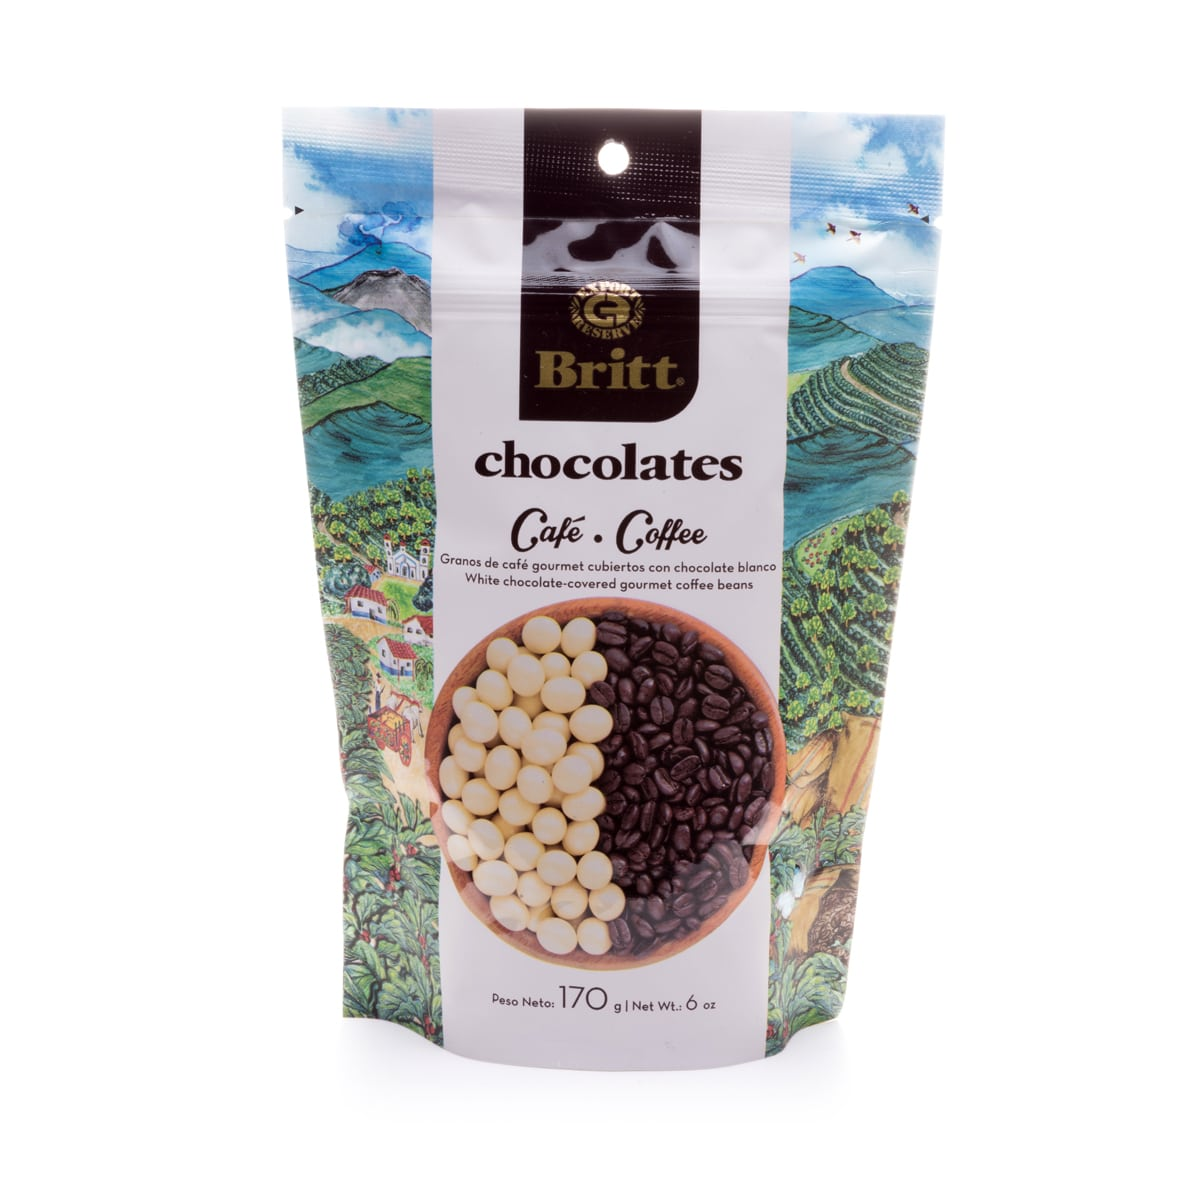 White Chocolate Covered Coffee Beans